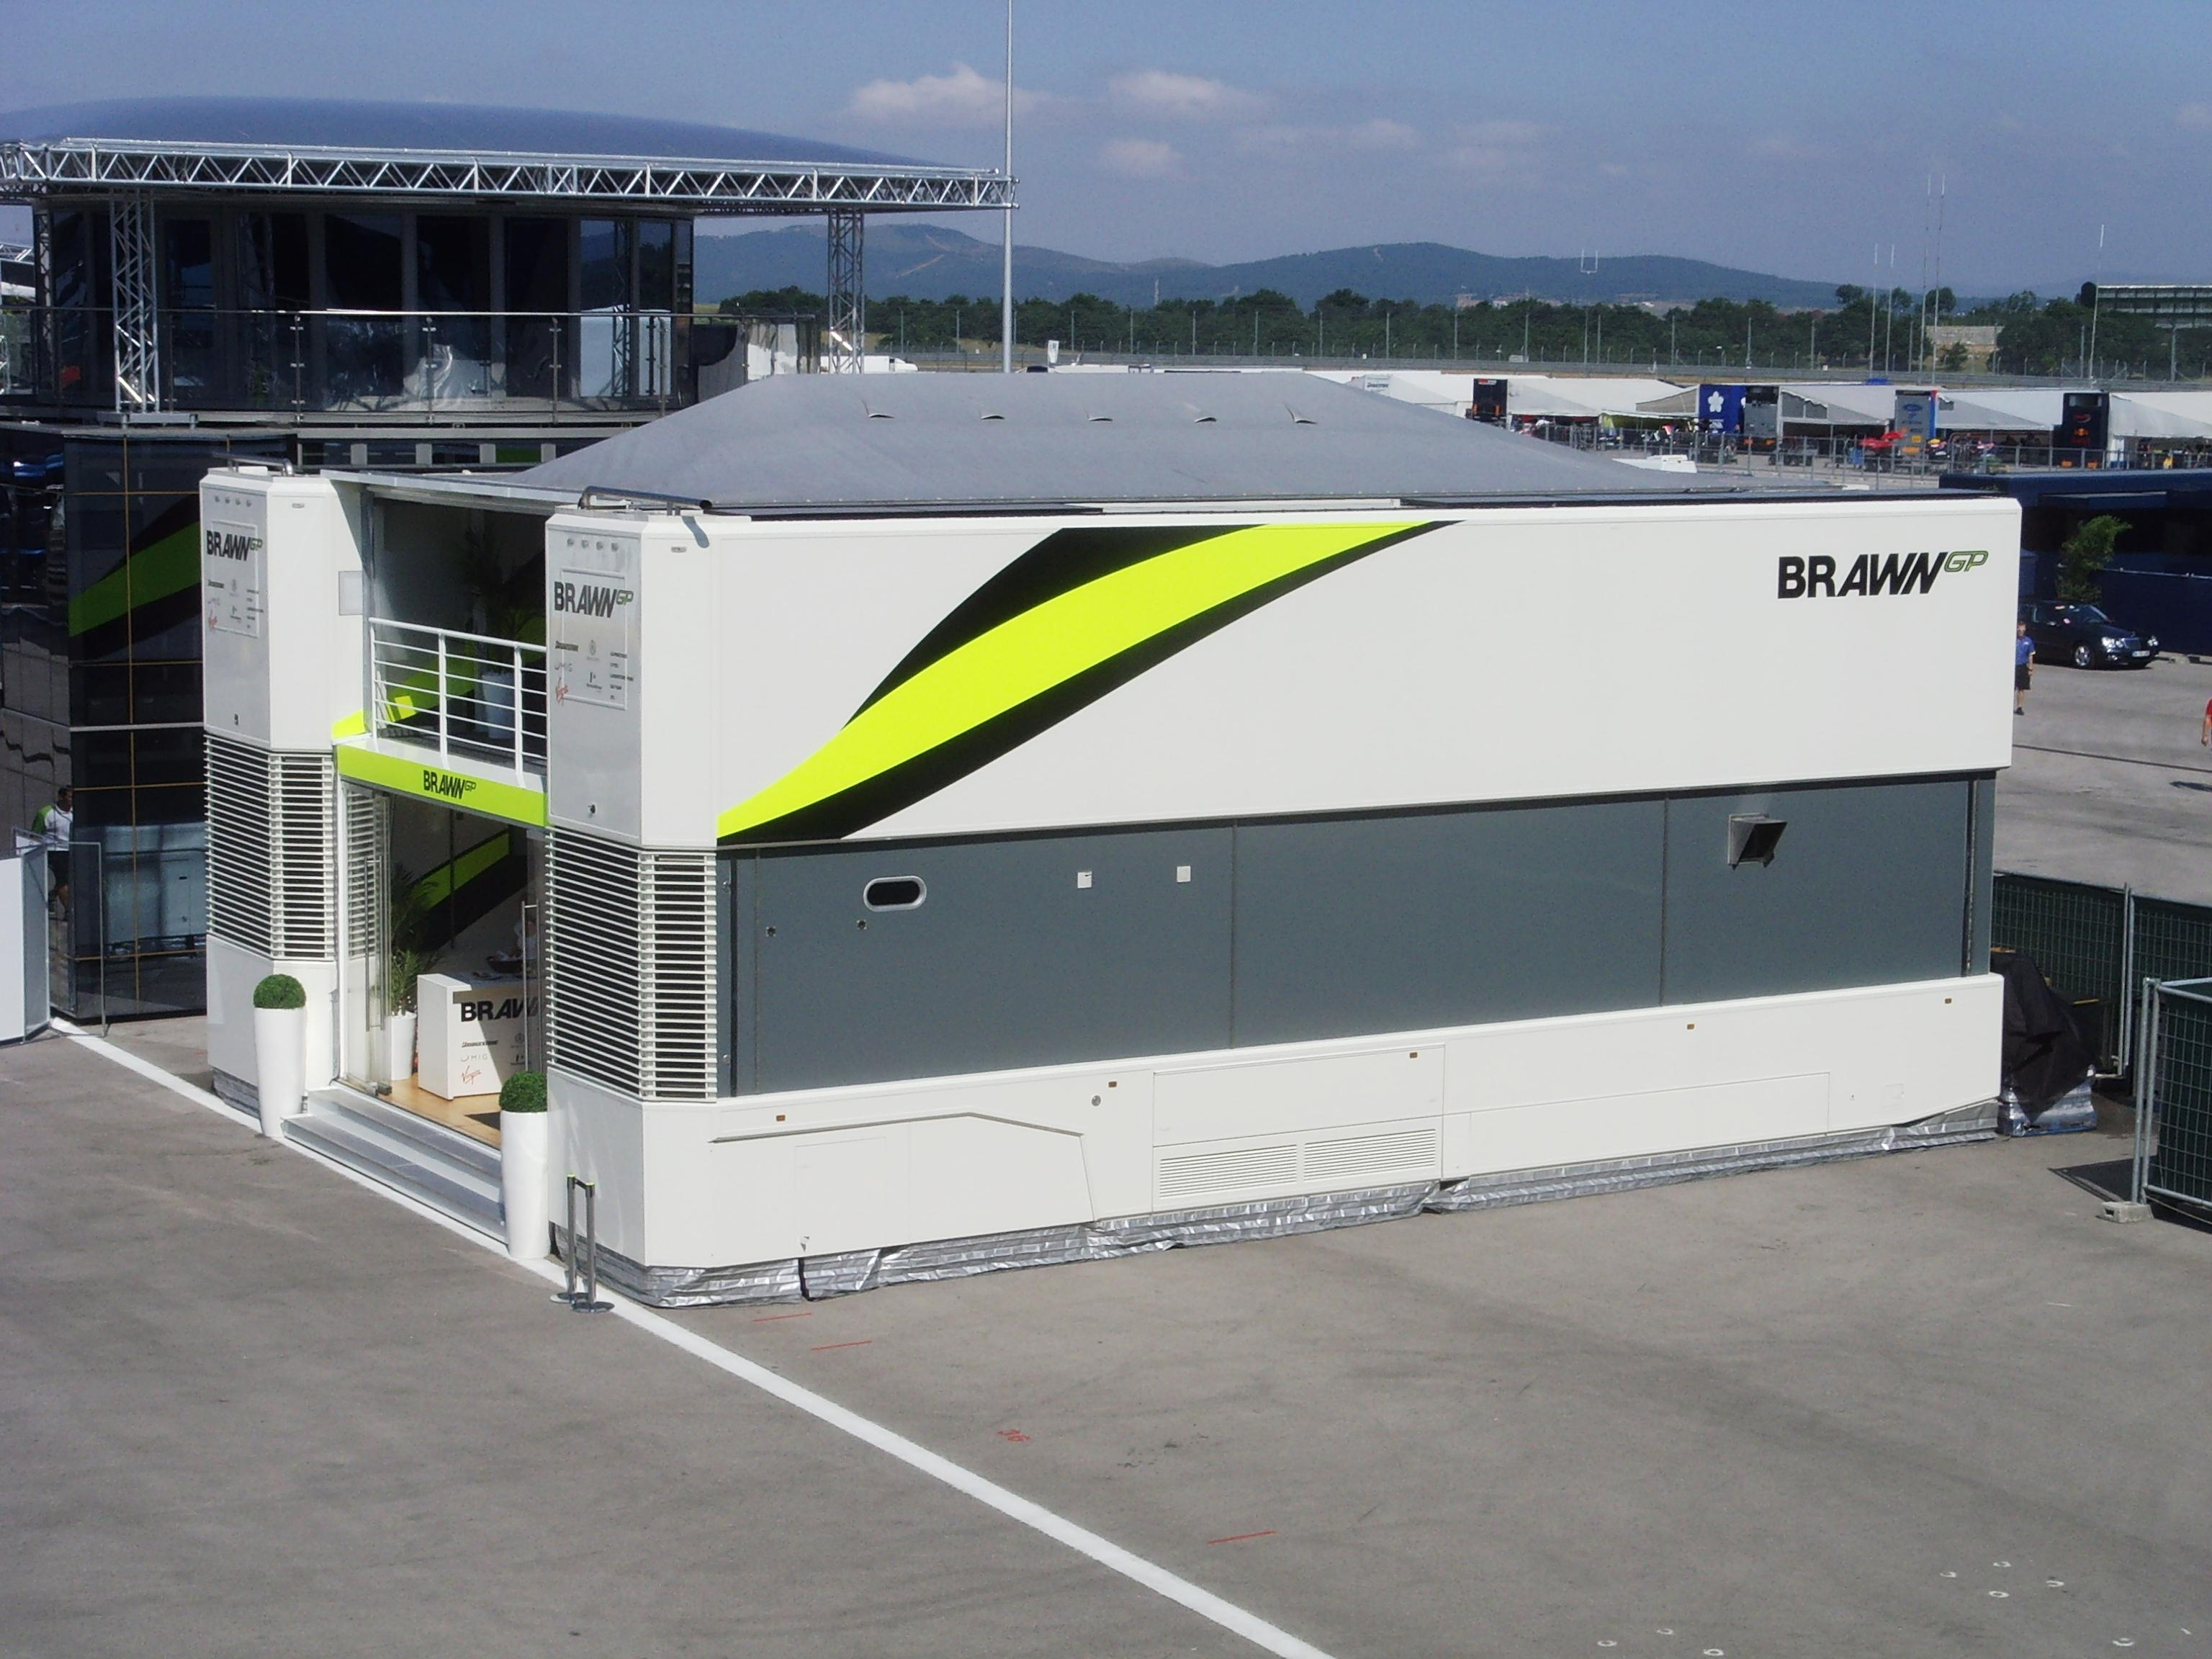 FileIstanbul Park Brawn BGP MotorhomeJPG